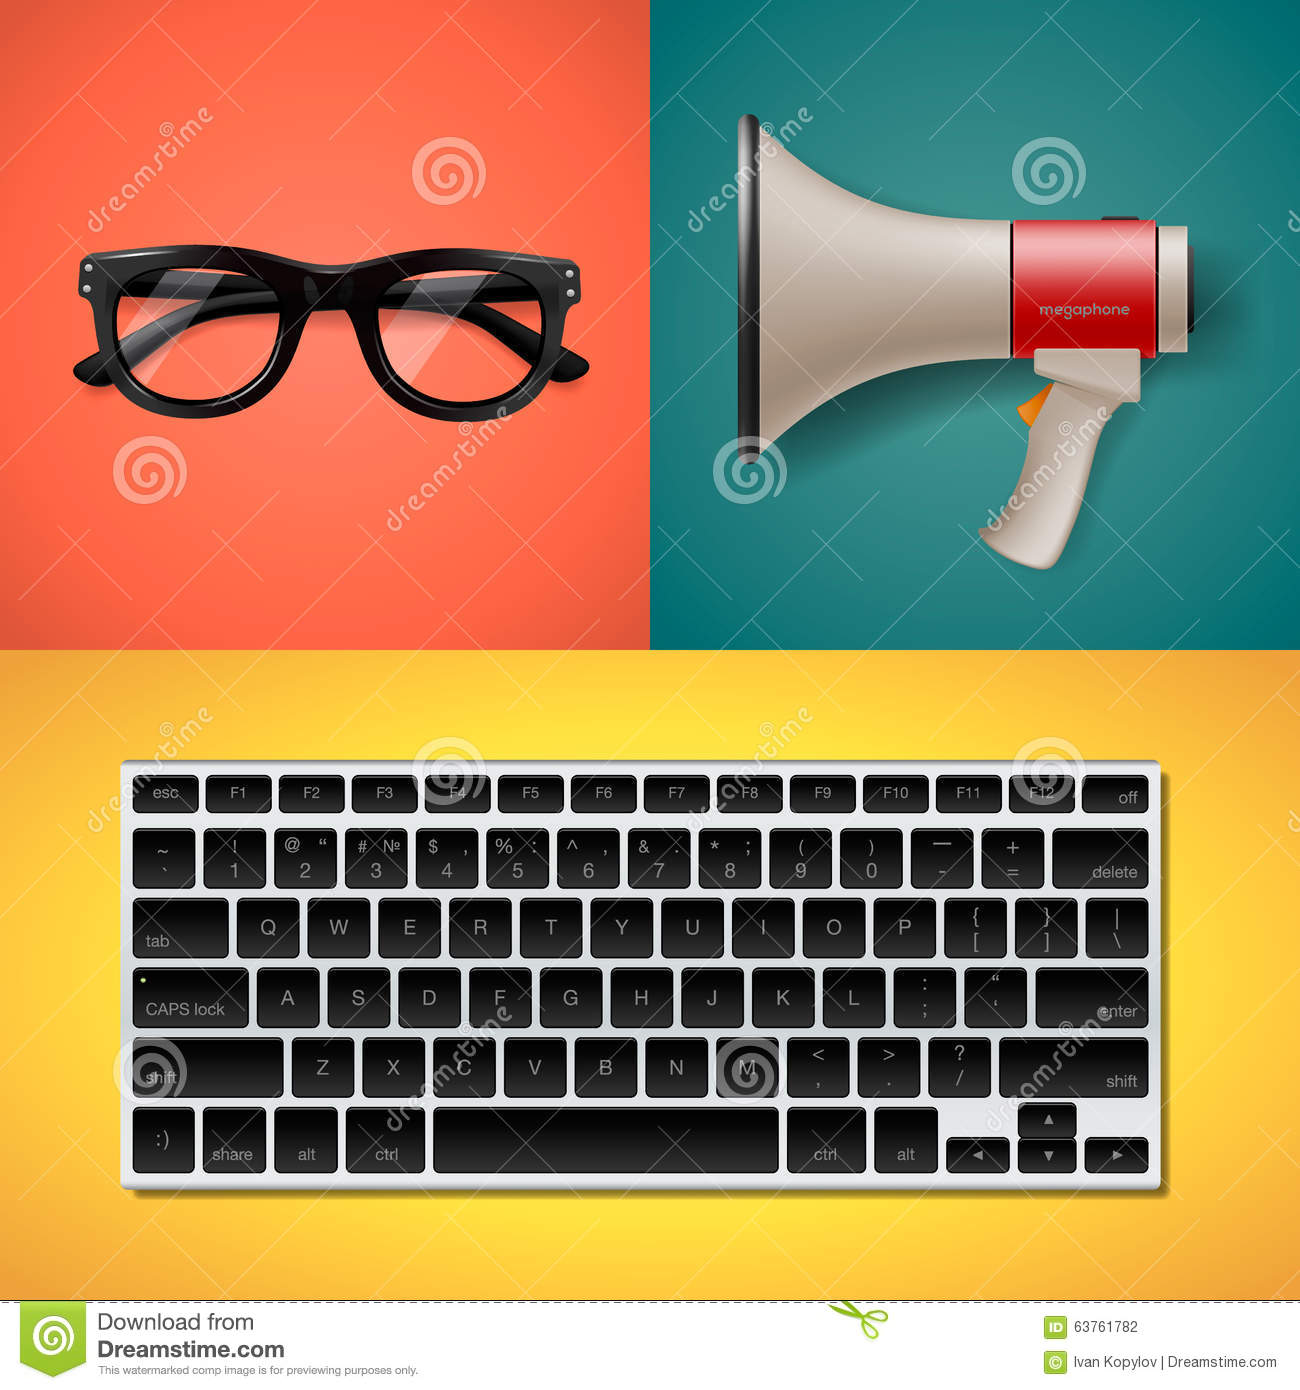 Blogging and writing for website